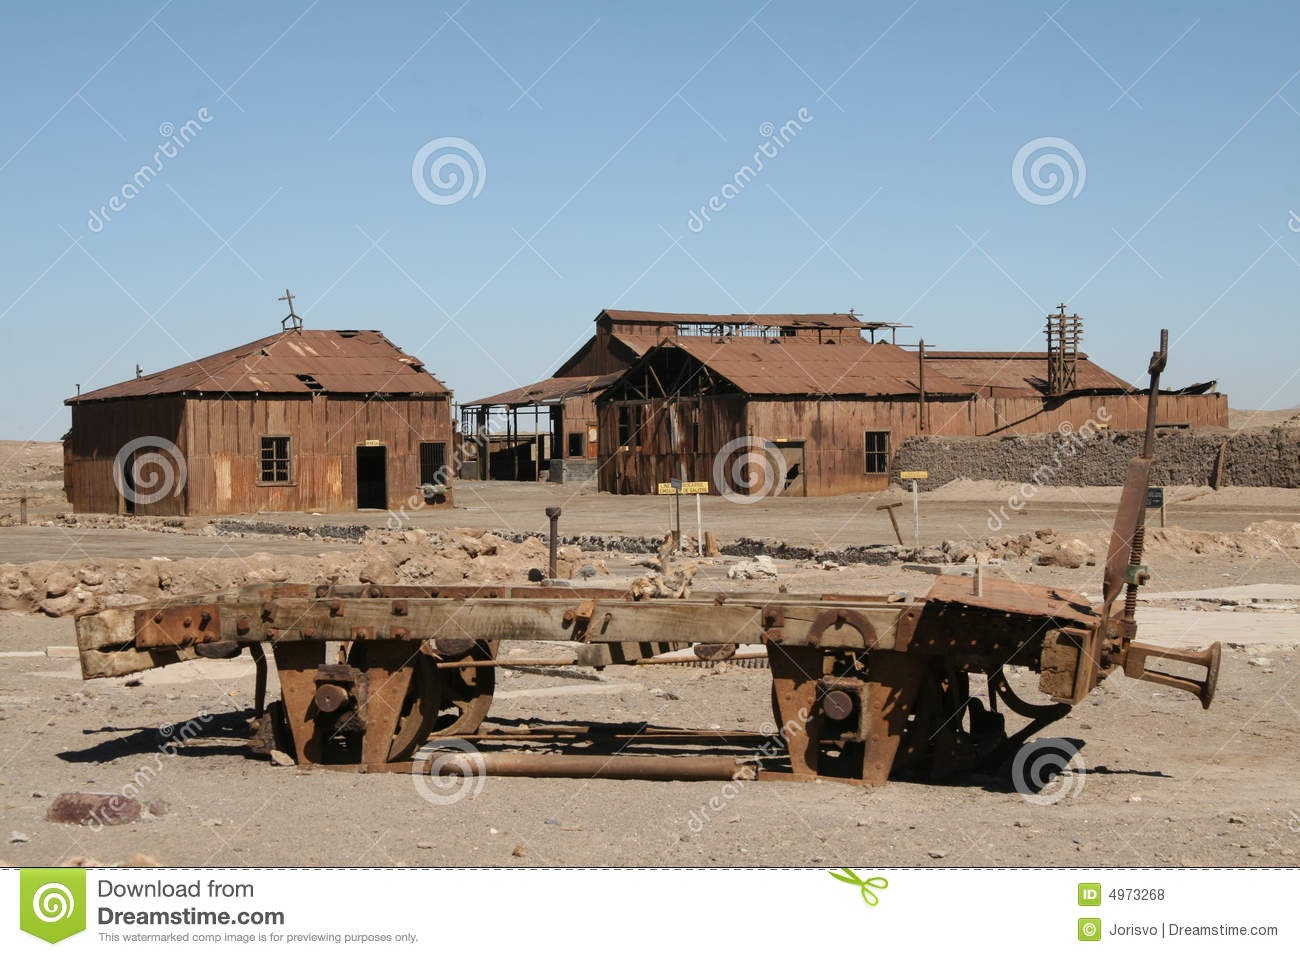 Download Ghost Town In Atacama Desert, Chile Stock Photo - Image of humberstone, desolation: 4973268